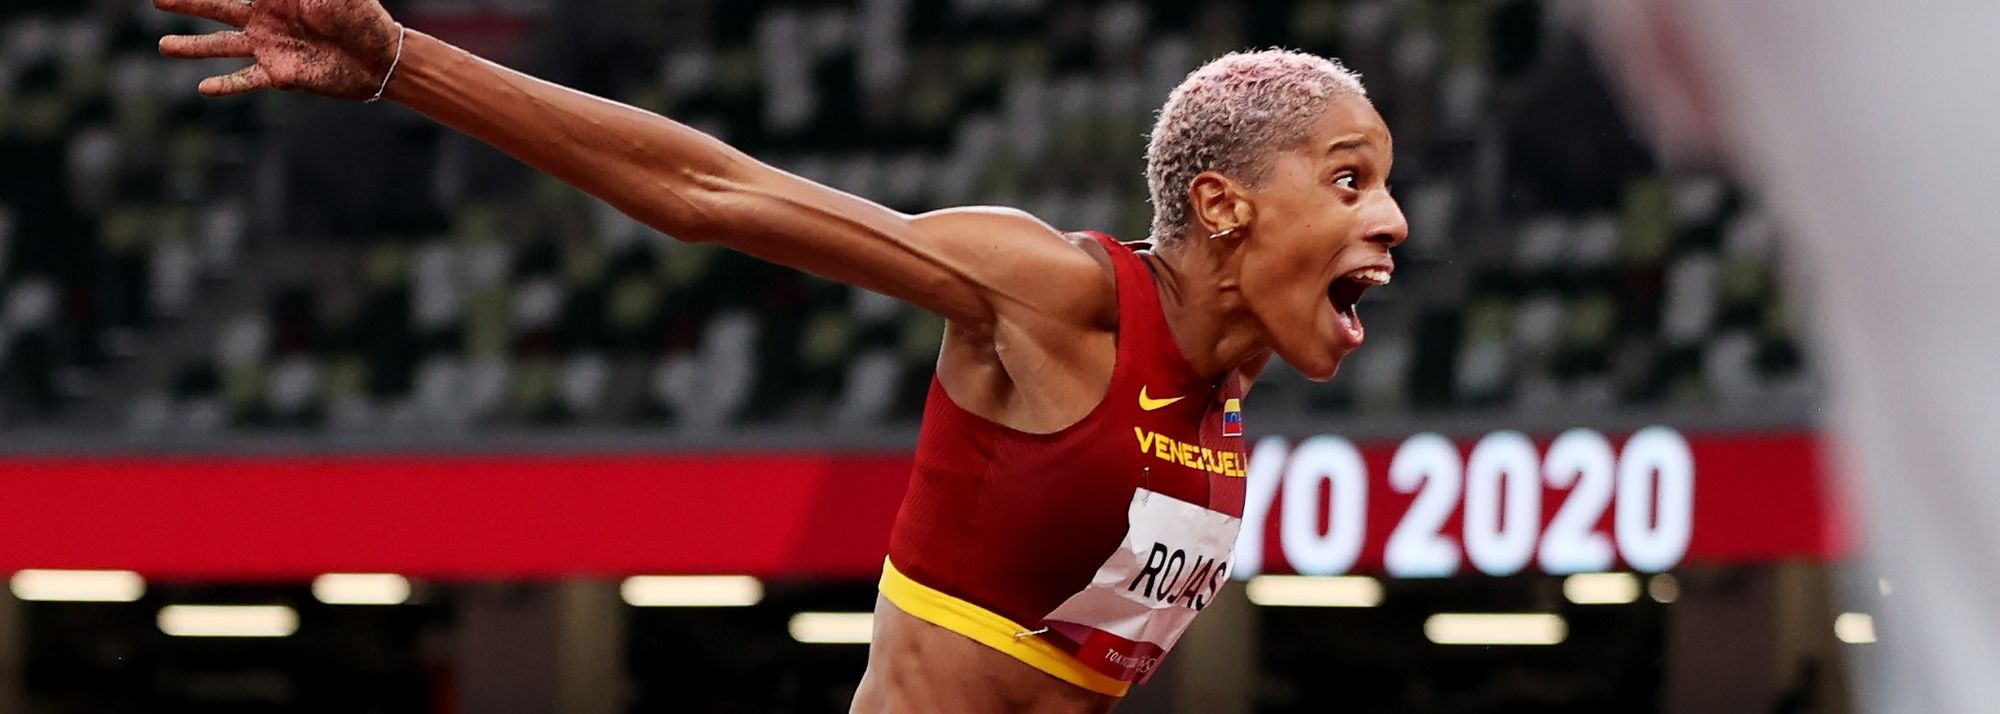 Yulimar Rojas saved her best for last in the triple jump at the Tokyo Olympic Games, sailing out to a world record of 15.67m* to land Venezuela's first Olympic title in athletics.